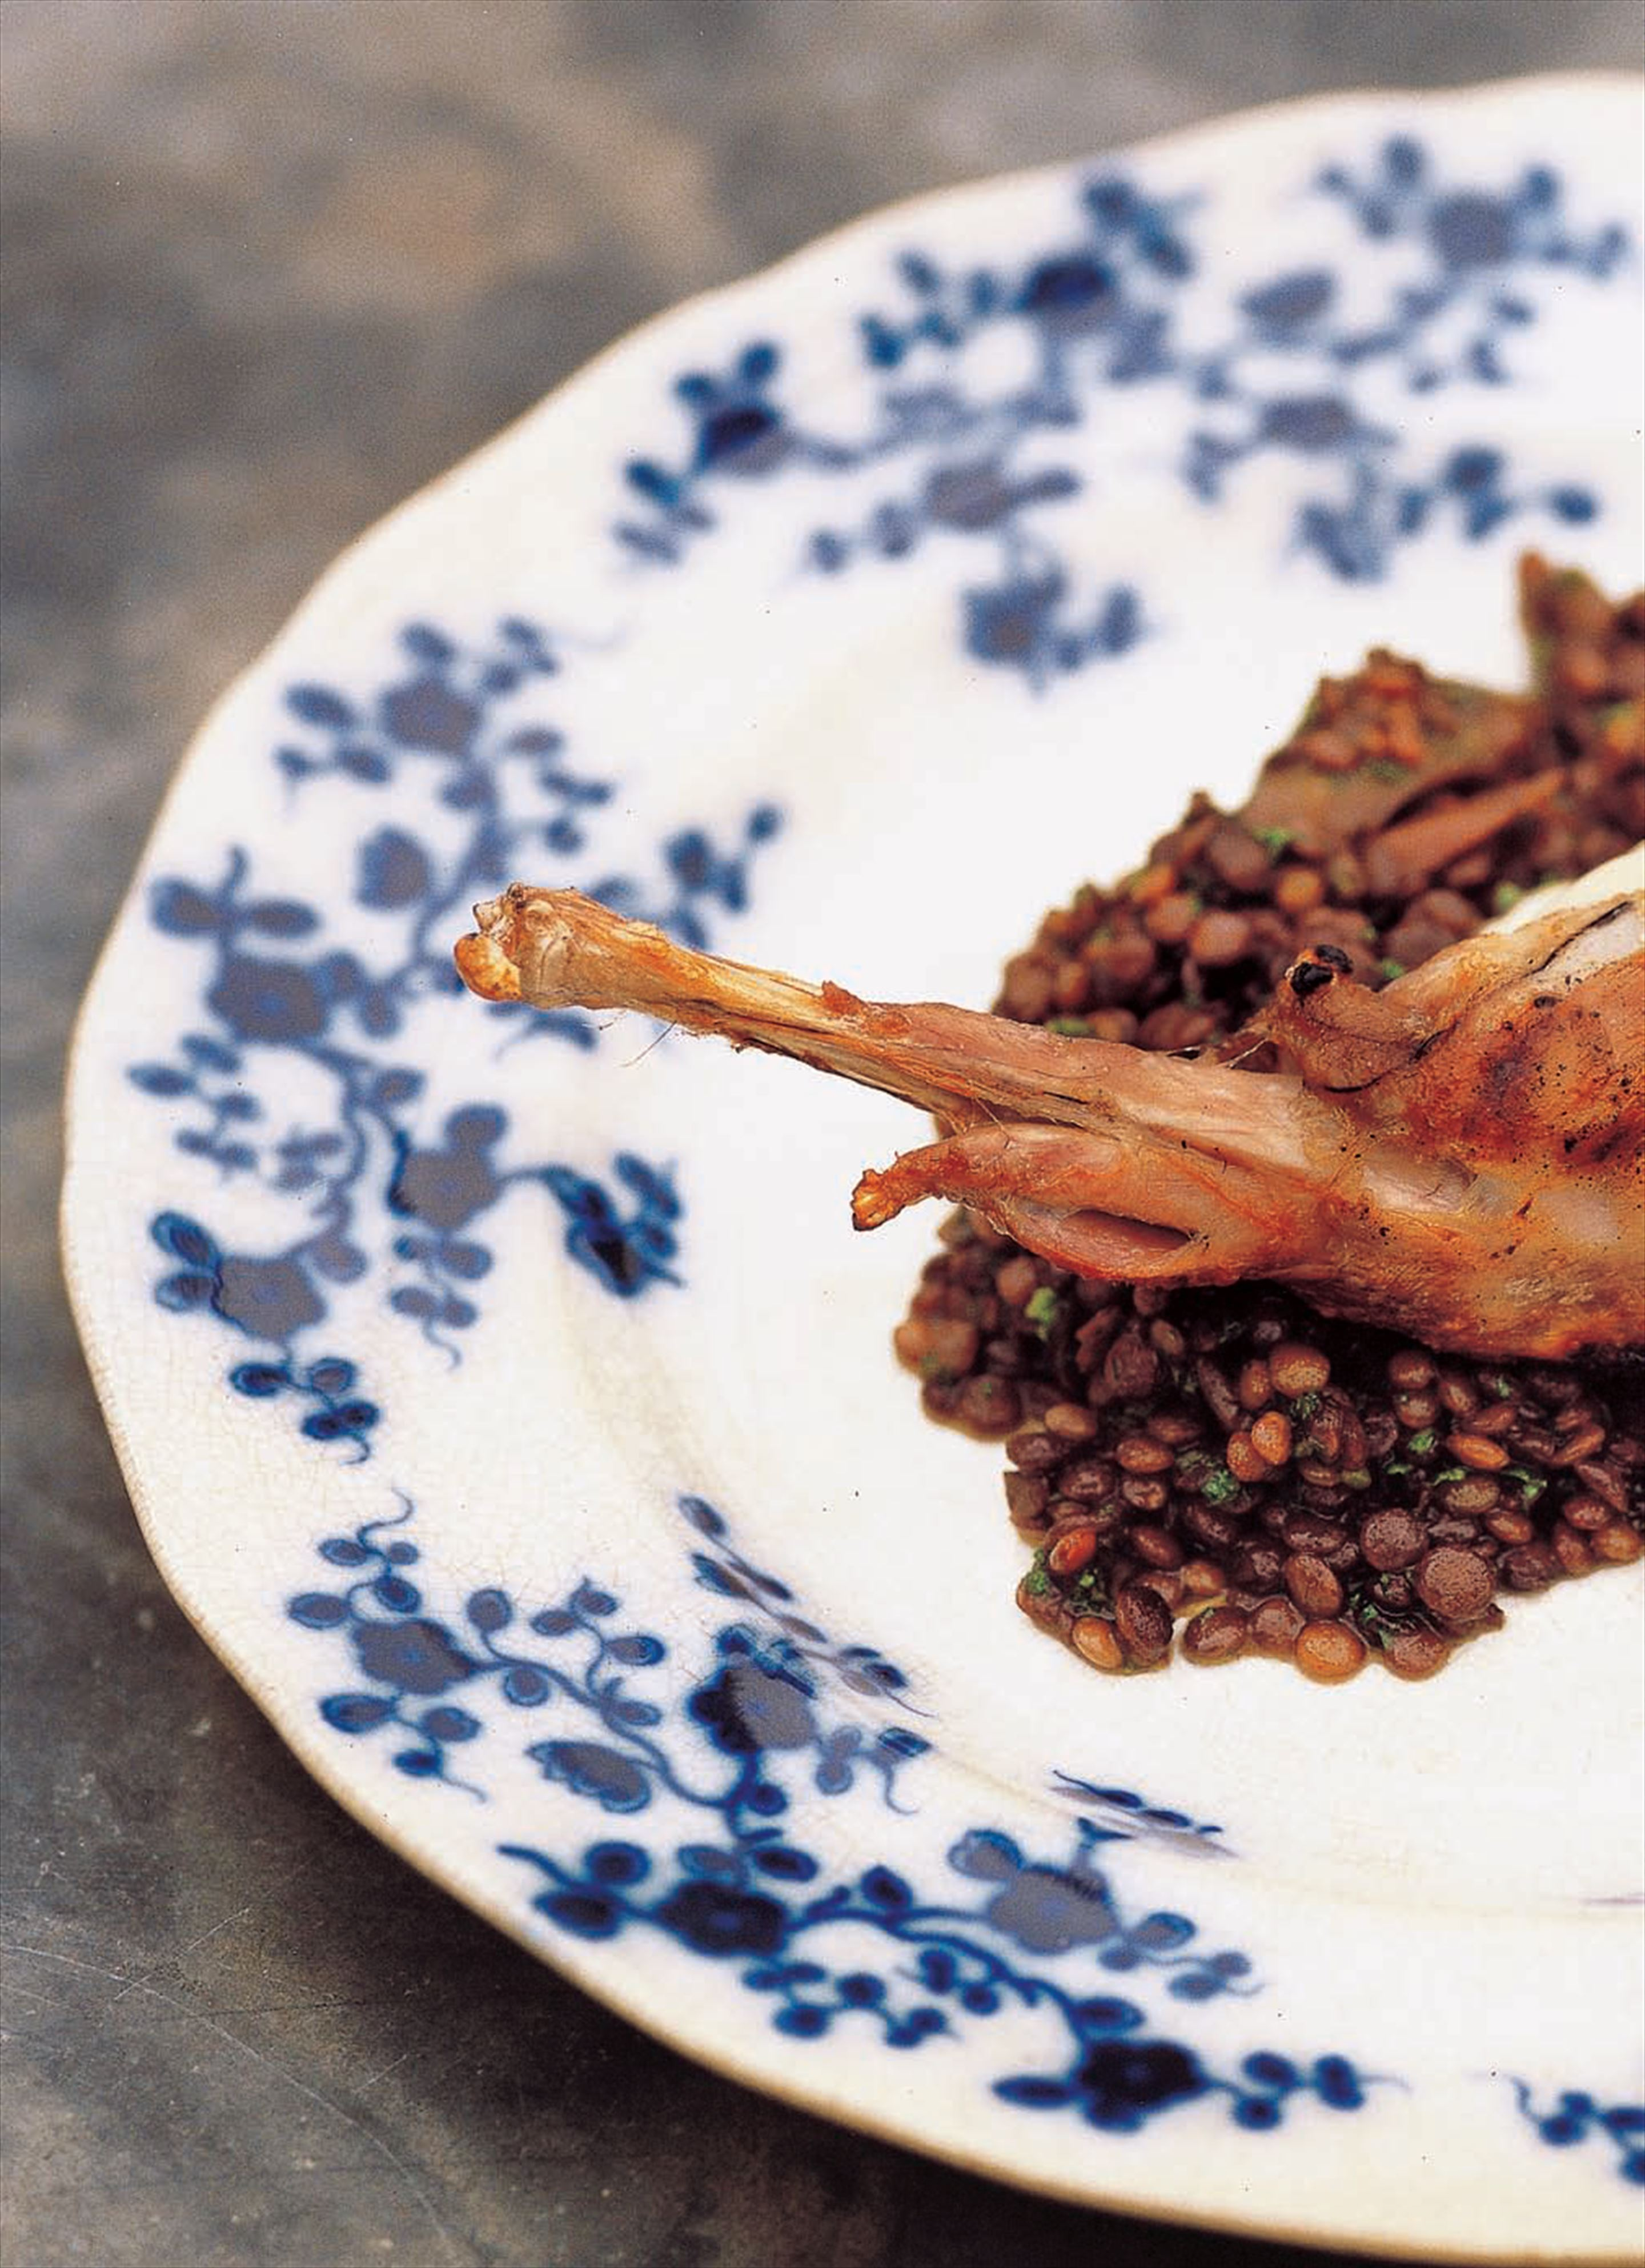 Grilled rabbit with lentils cooked in red wine